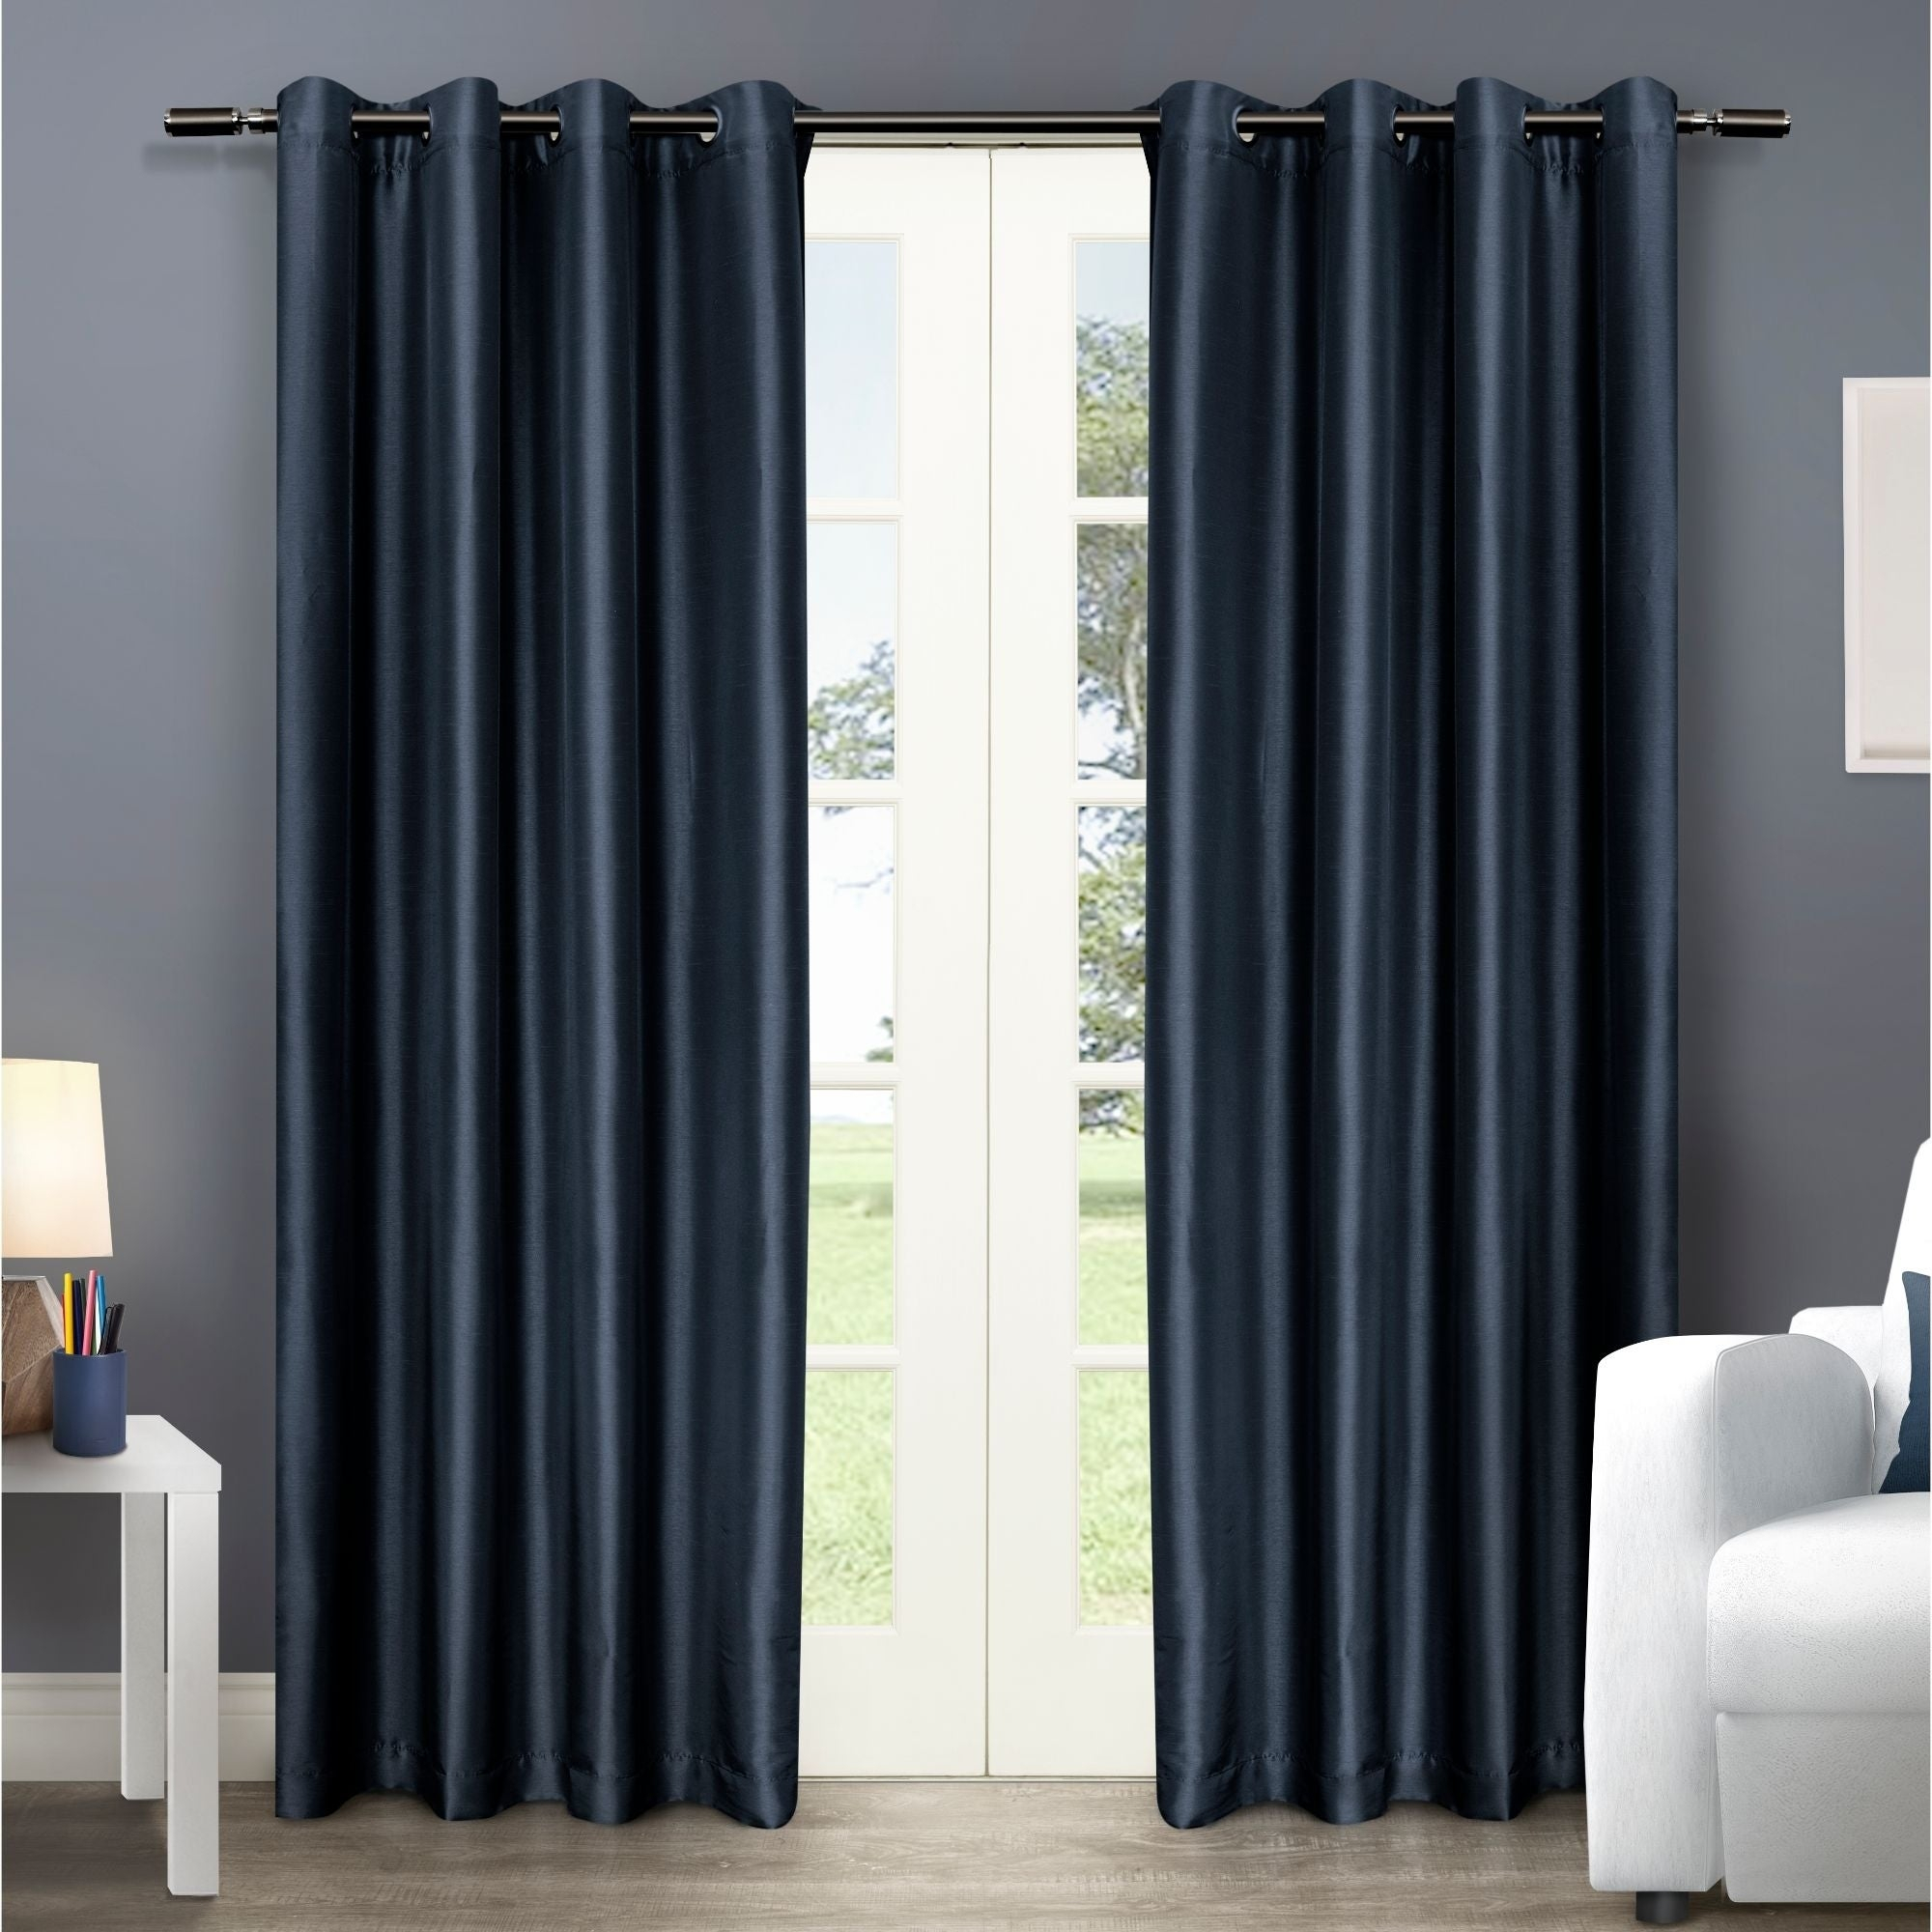 Copper Grove Fulgence Faux Silk Grommet Top Panel Curtains – N/ A In Copper Grove Fulgence Faux Silk Grommet Top Panel Curtains (View 3 of 20)